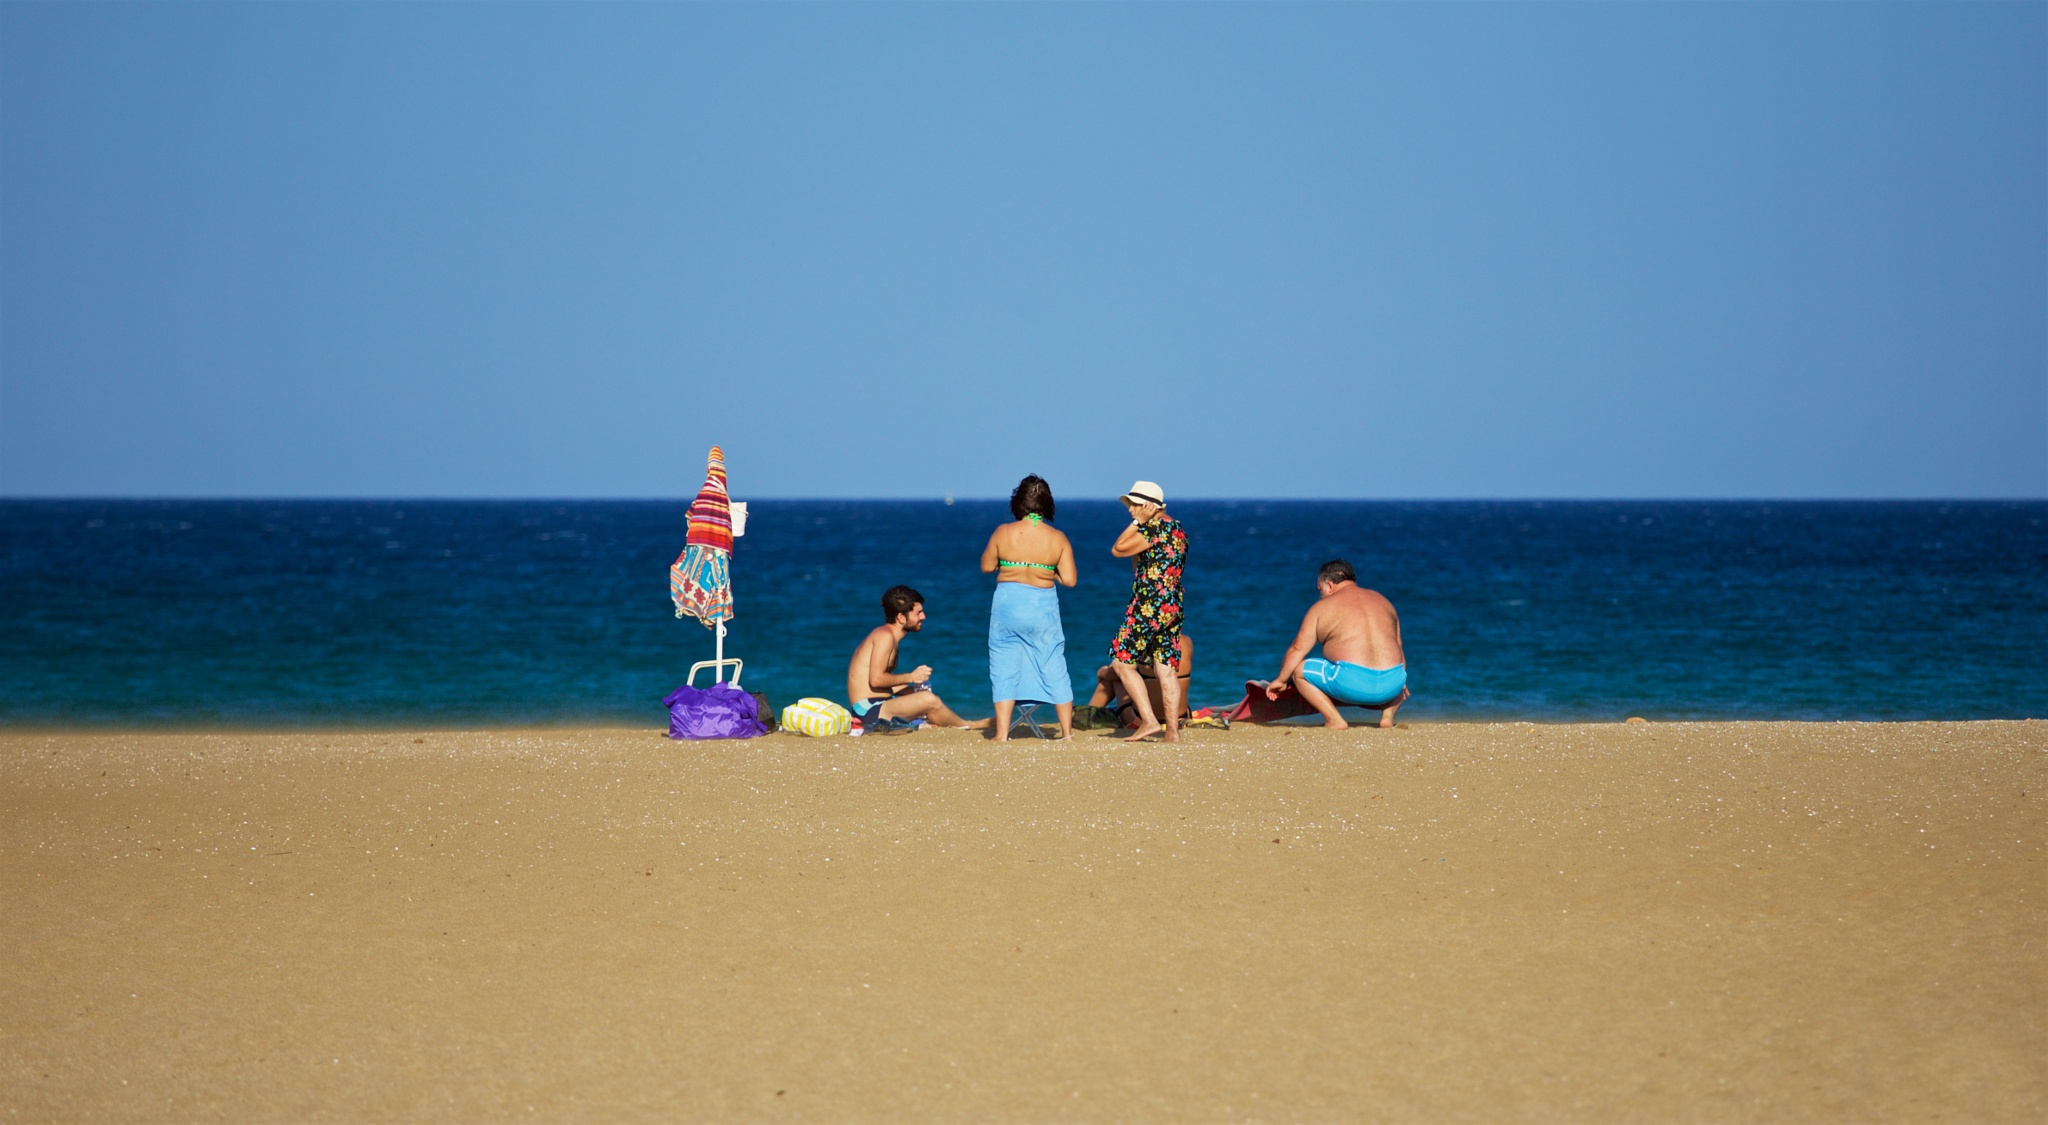 summer's afternoon by paolotomaselloct